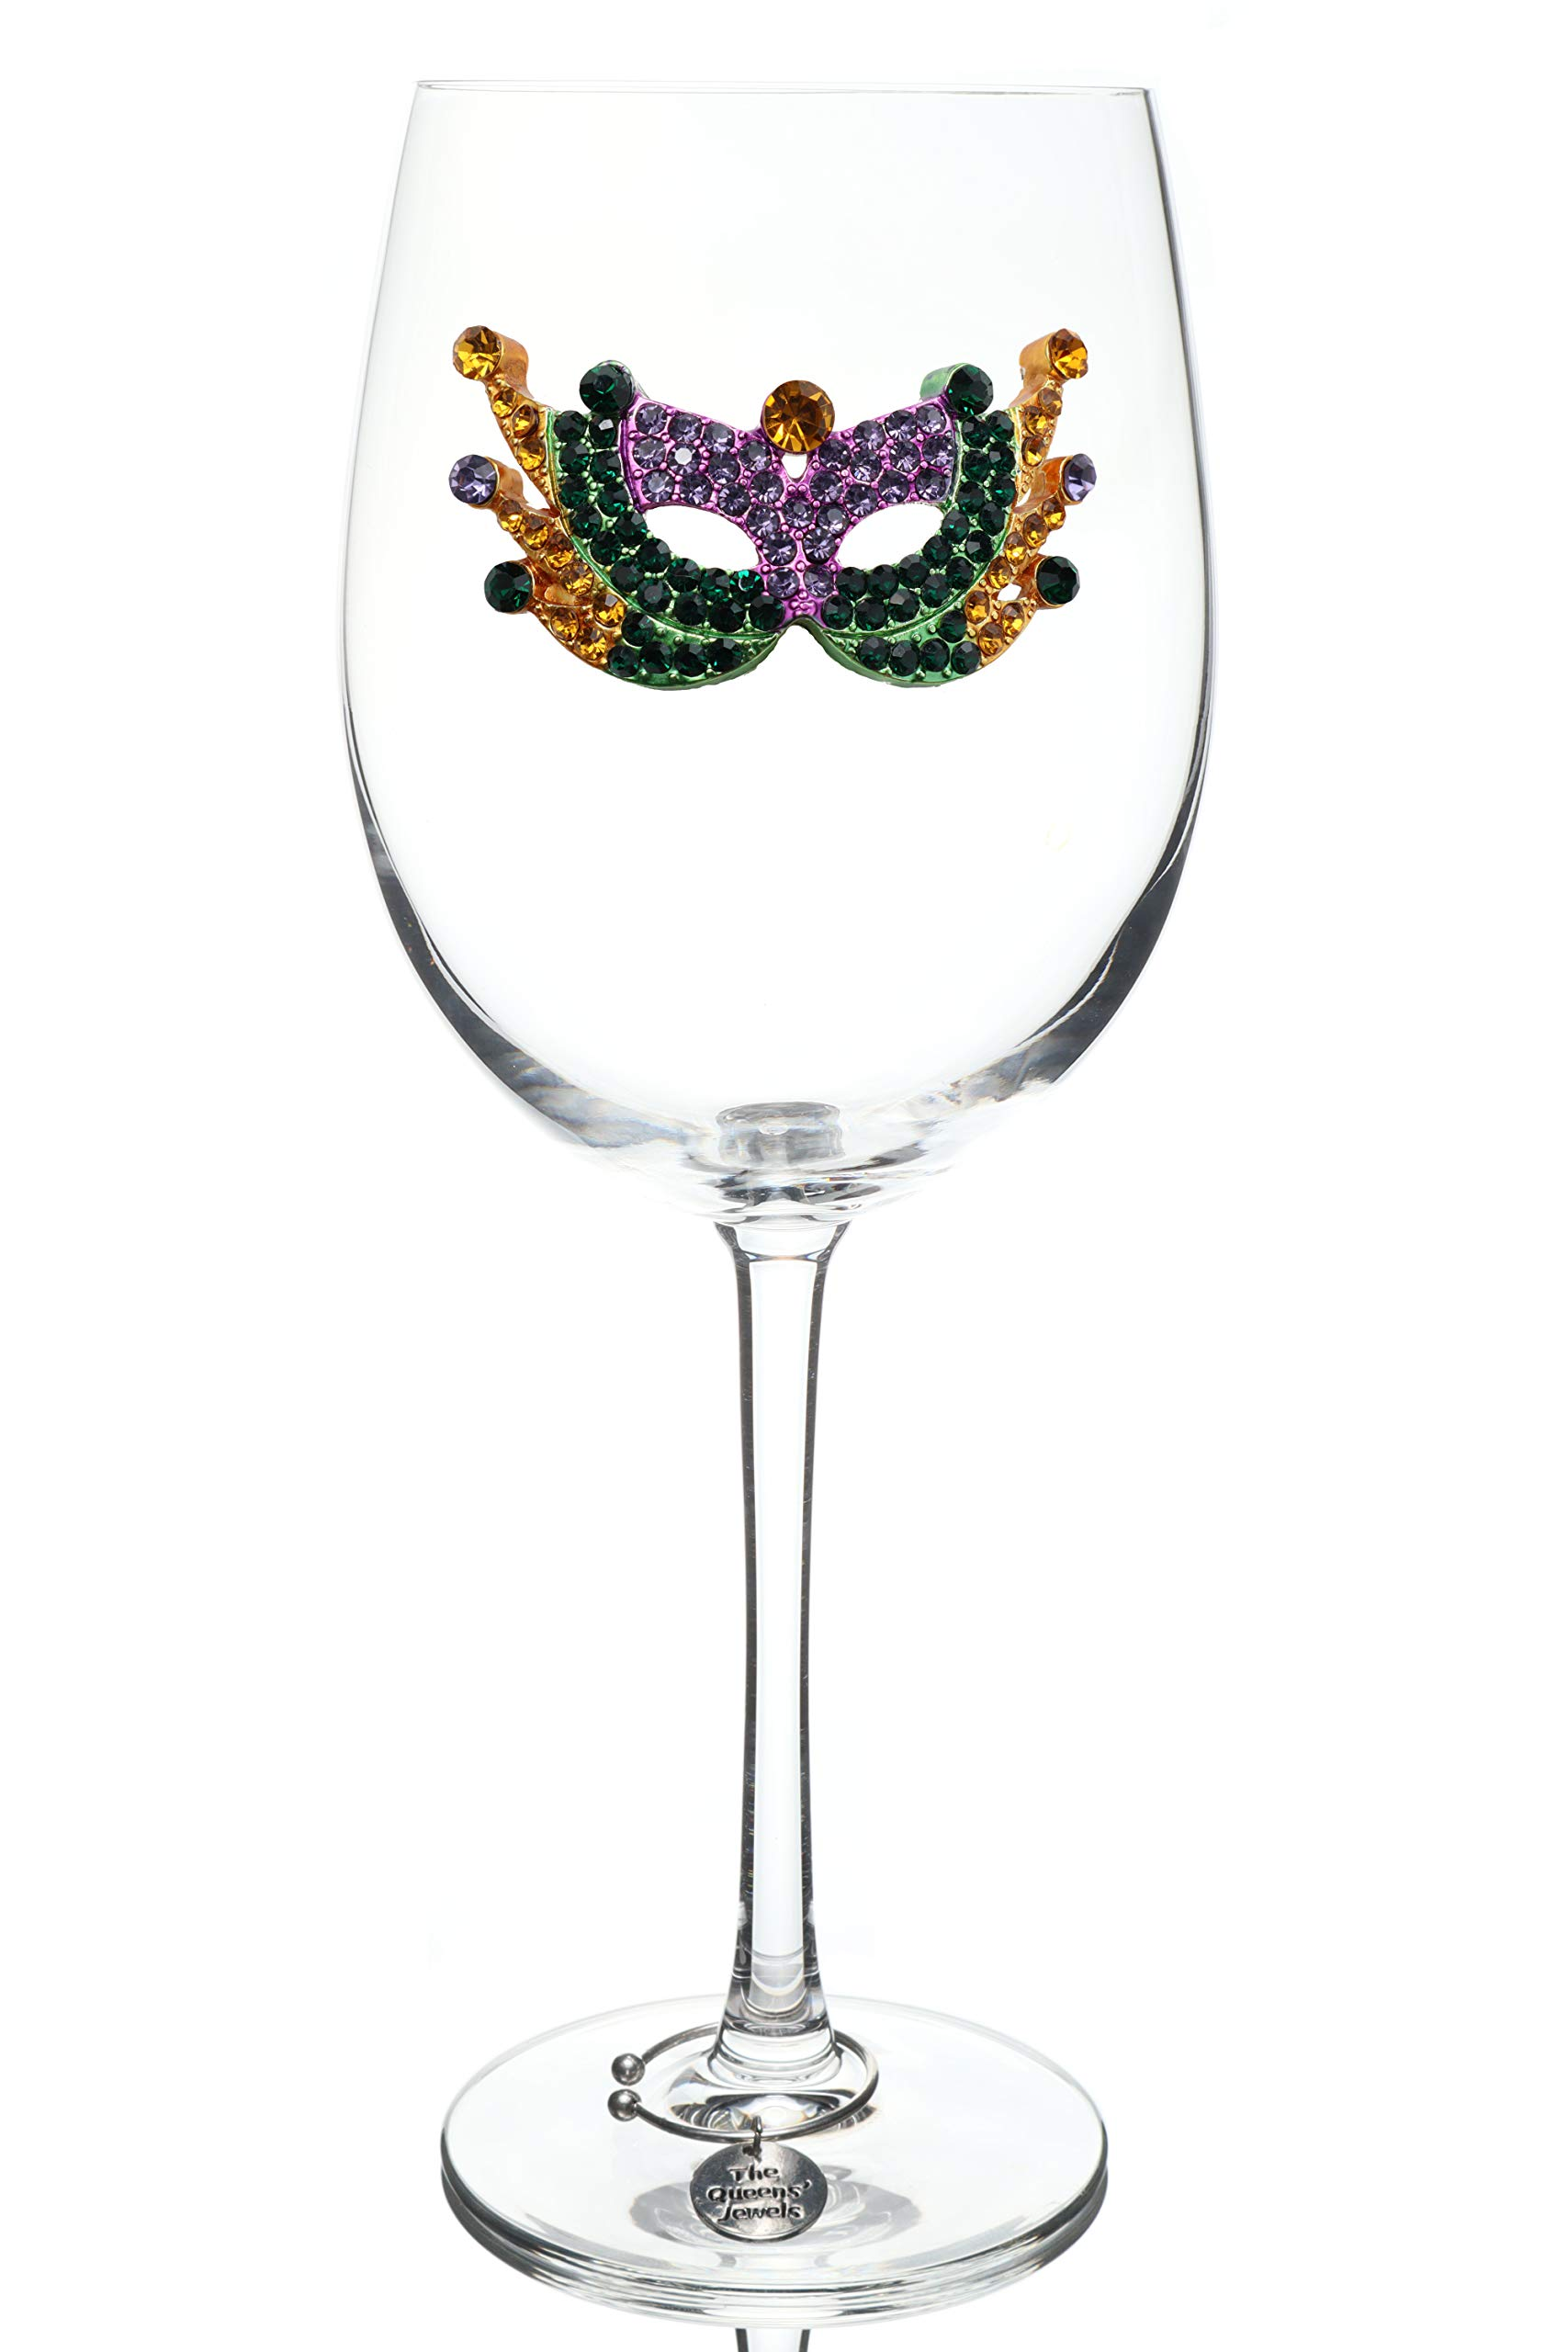 THE QUEENS' JEWELS Mardi Gras Mask Jeweled Stemmed Wine Glass - Unique Gift for Women, Birthday, Cute, Fun, Not Painted, Decorated, Bling, Bedazzled, Rhinestone